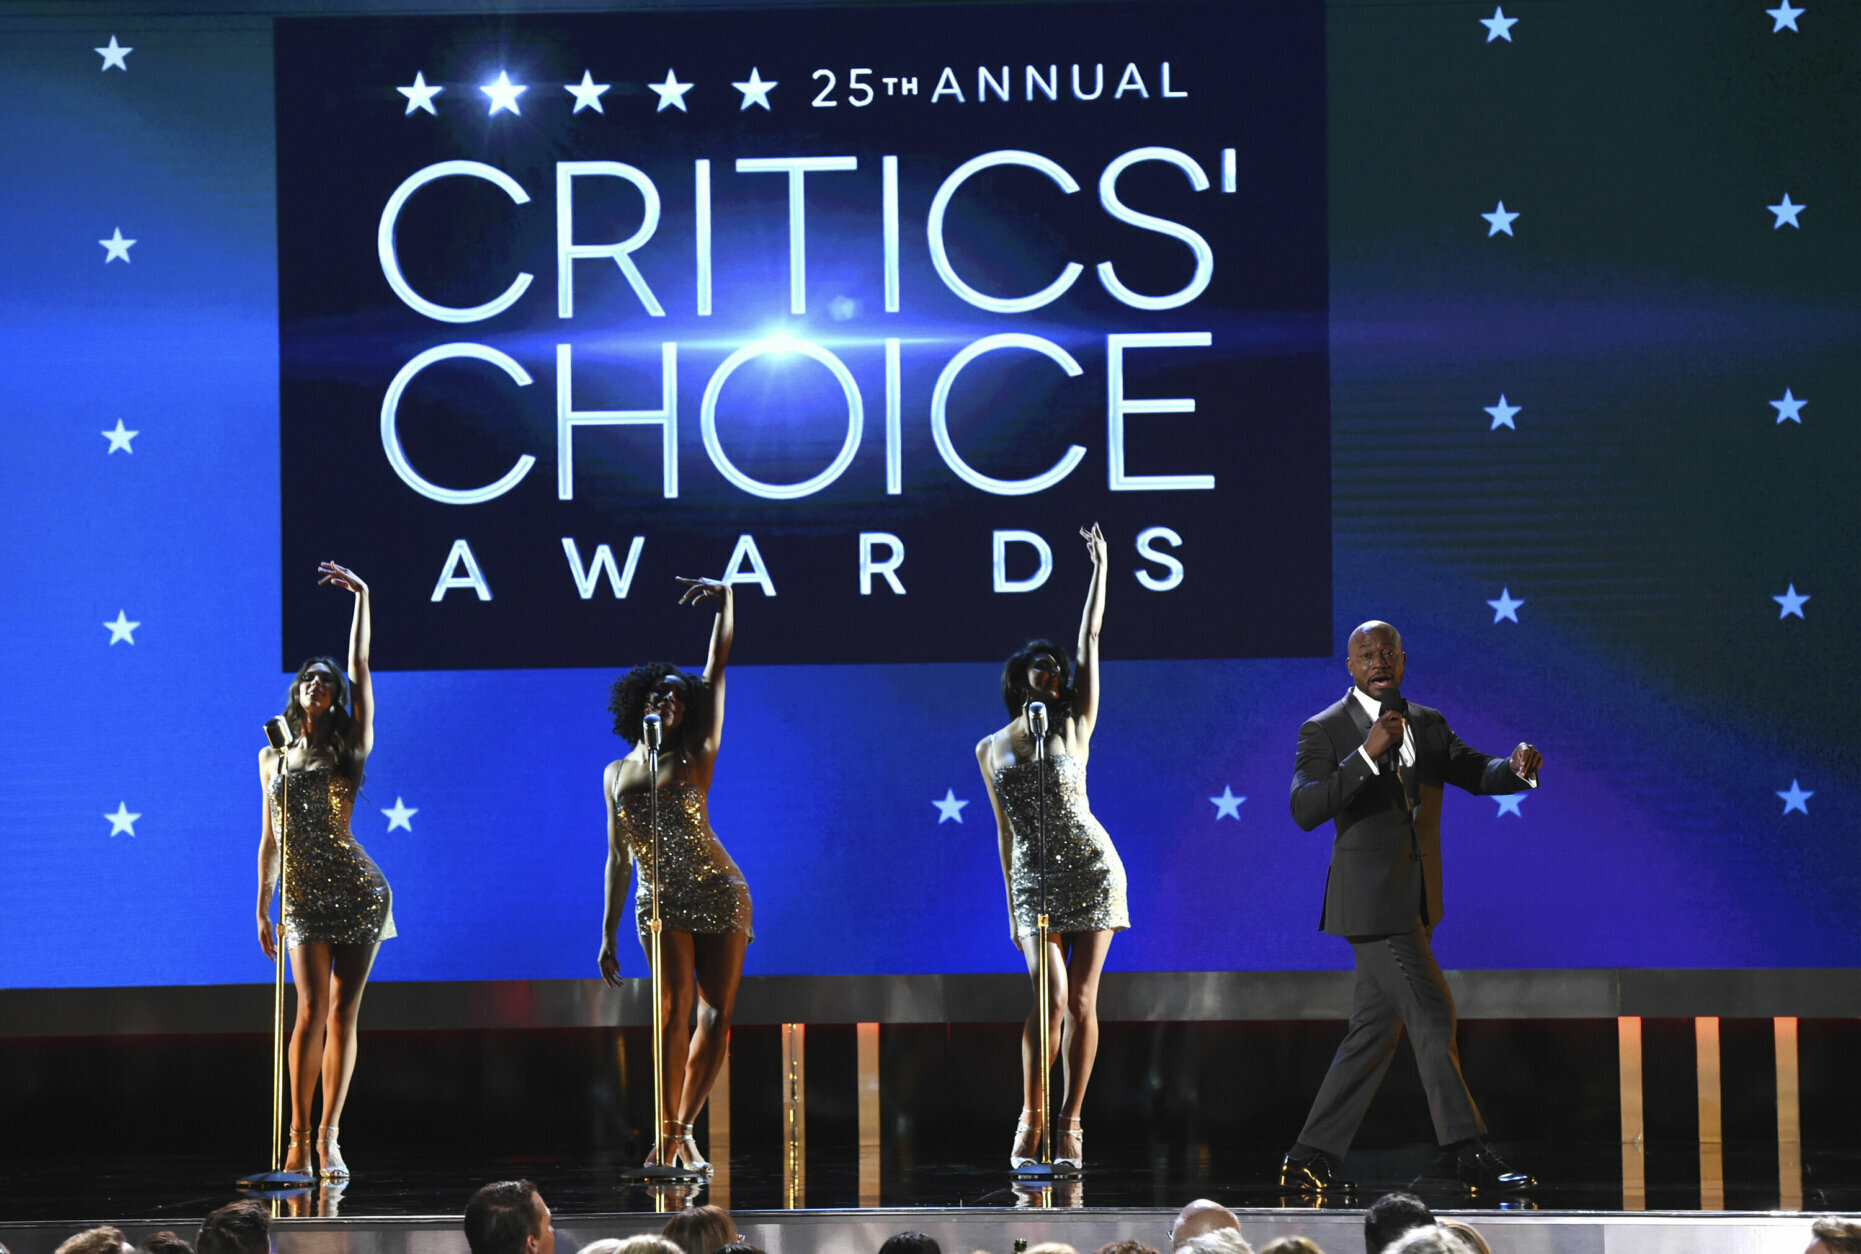 Host Taye Diggs, right, performs at the 25th annual Critics' Choice Awards on Sunday, Jan. 12, 2020, at the Barker Hangar in Santa Monica, Calif. (AP Photo/Chris Pizzello)